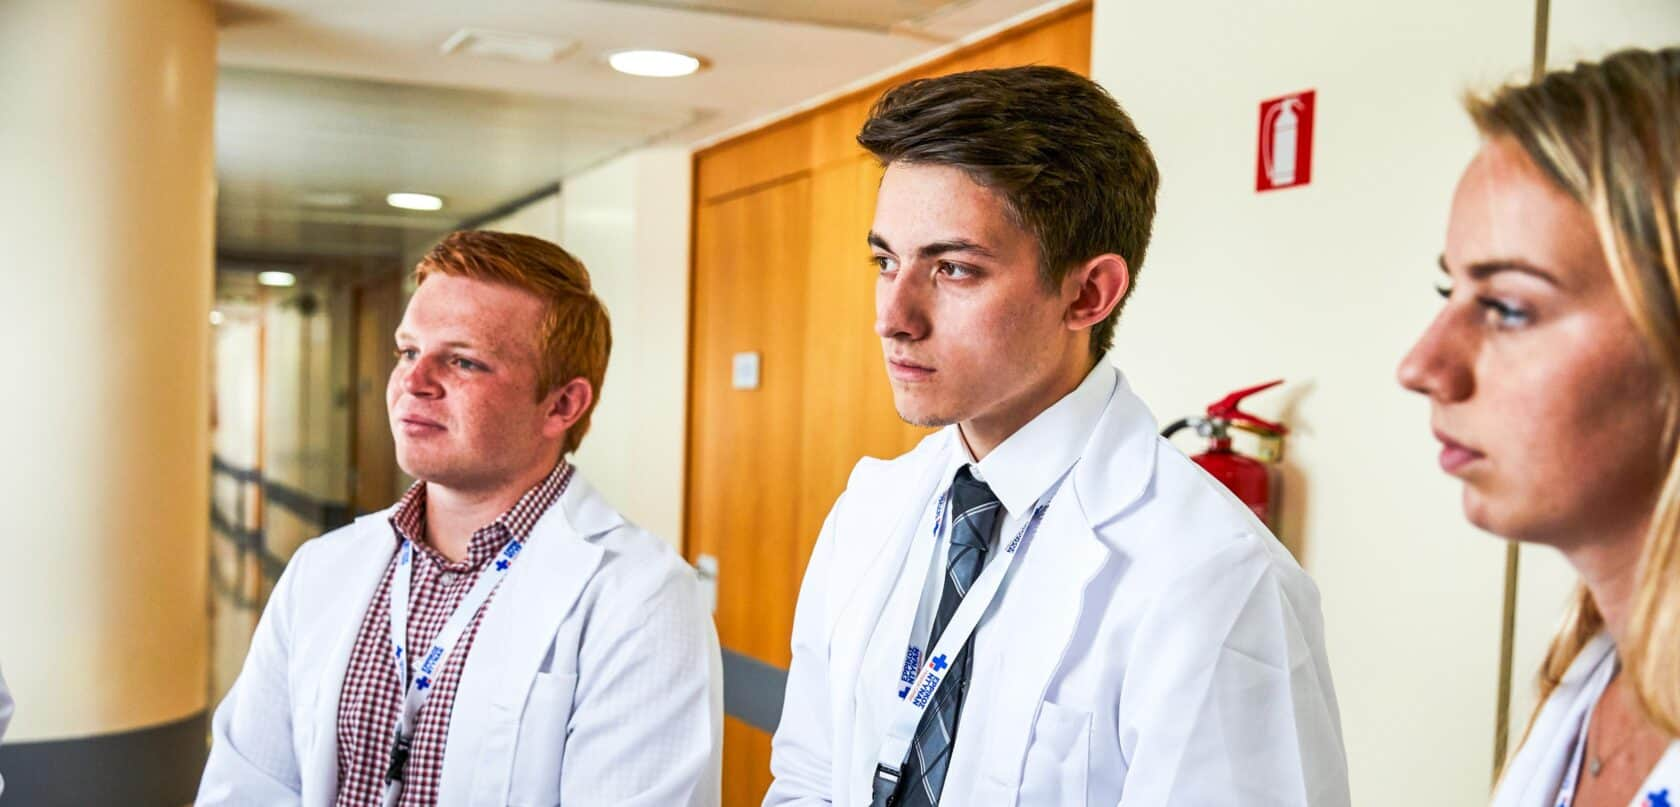 Students listening intently while shadowing in a hospital.